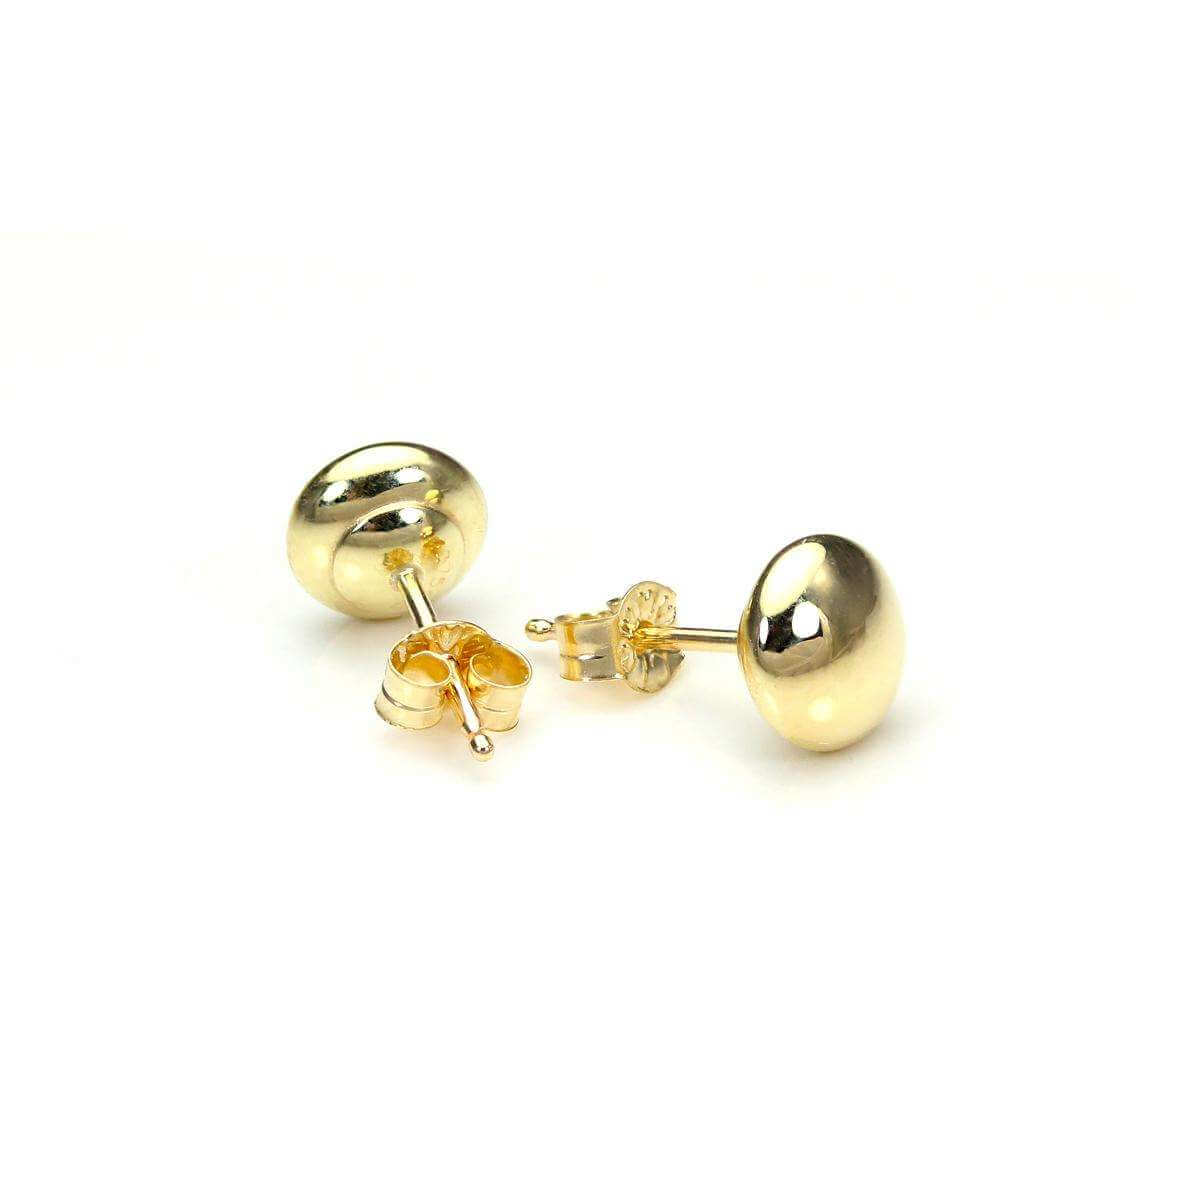 9ct Yellow Gold 5mm Plain Round Button Stud Earrings